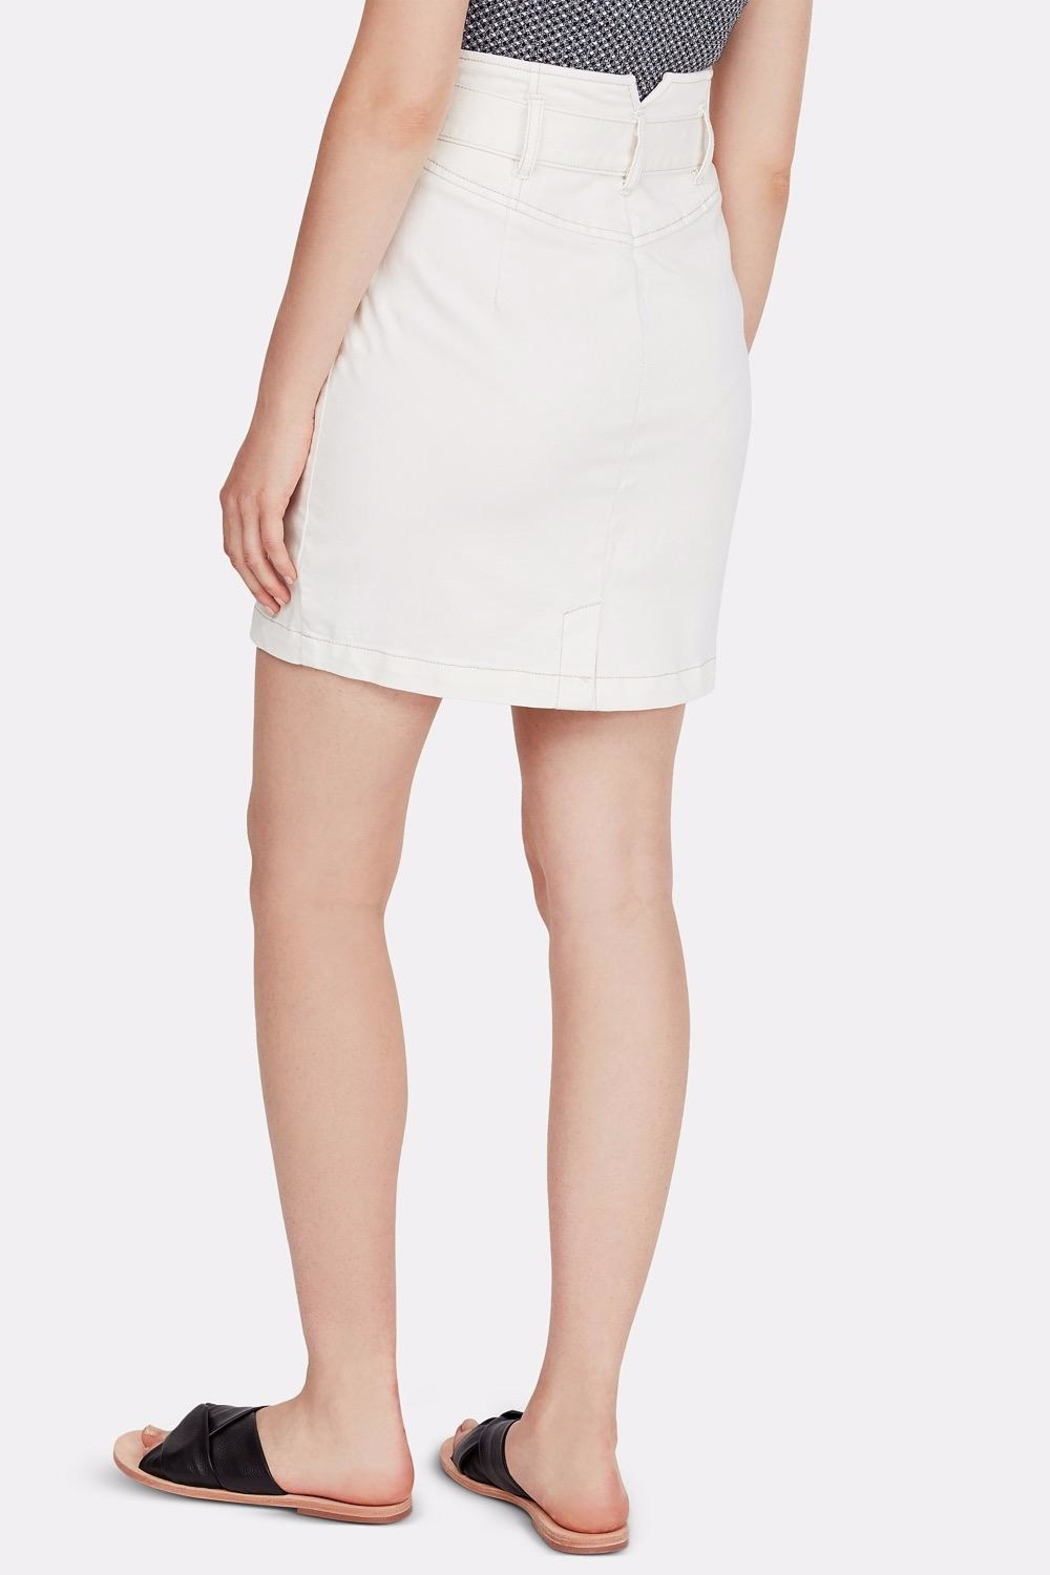 Free People Belted Mini Skirt - Front Full Image